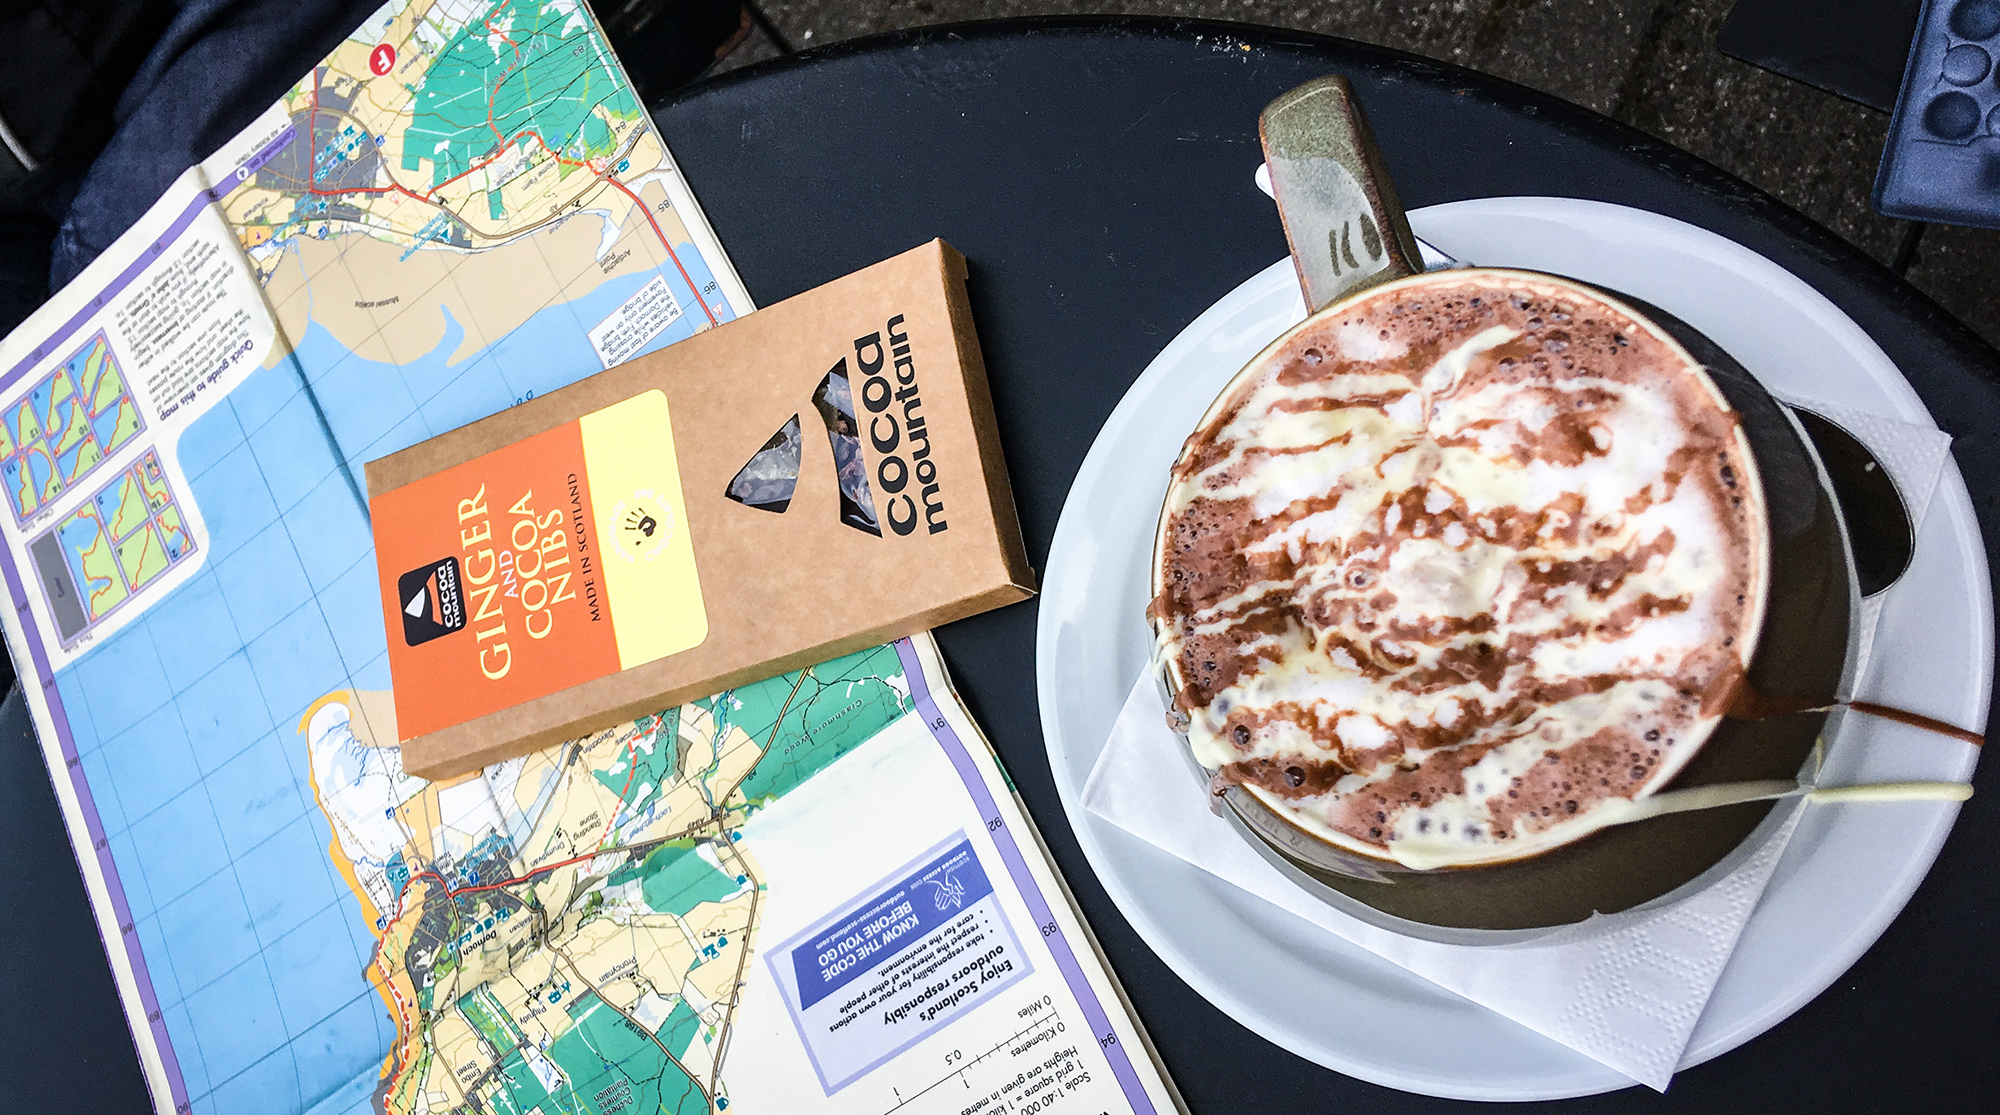 Cocoa Mountain Hot Chocolate, John o'Groats Trail Karte